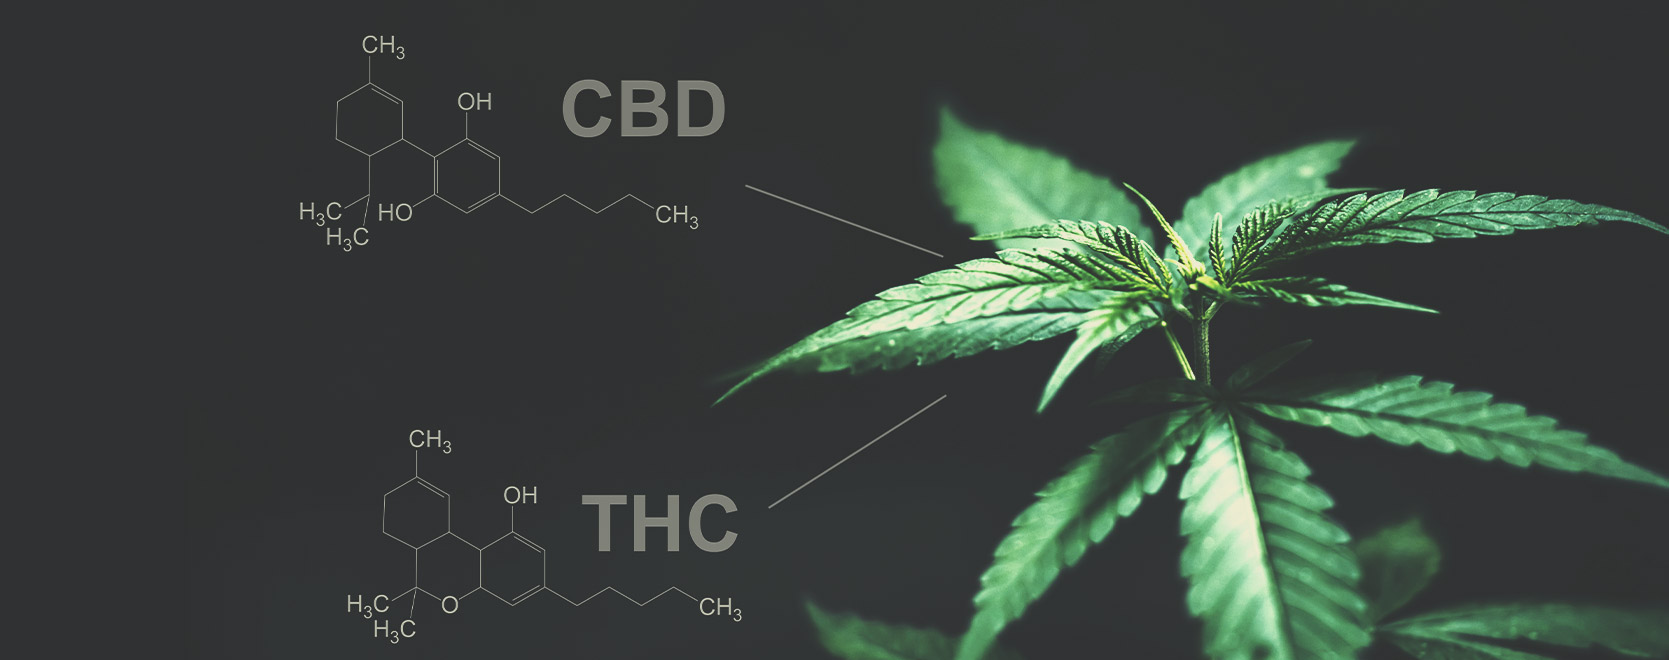 Is there any difference between THC and CBD in this regard?